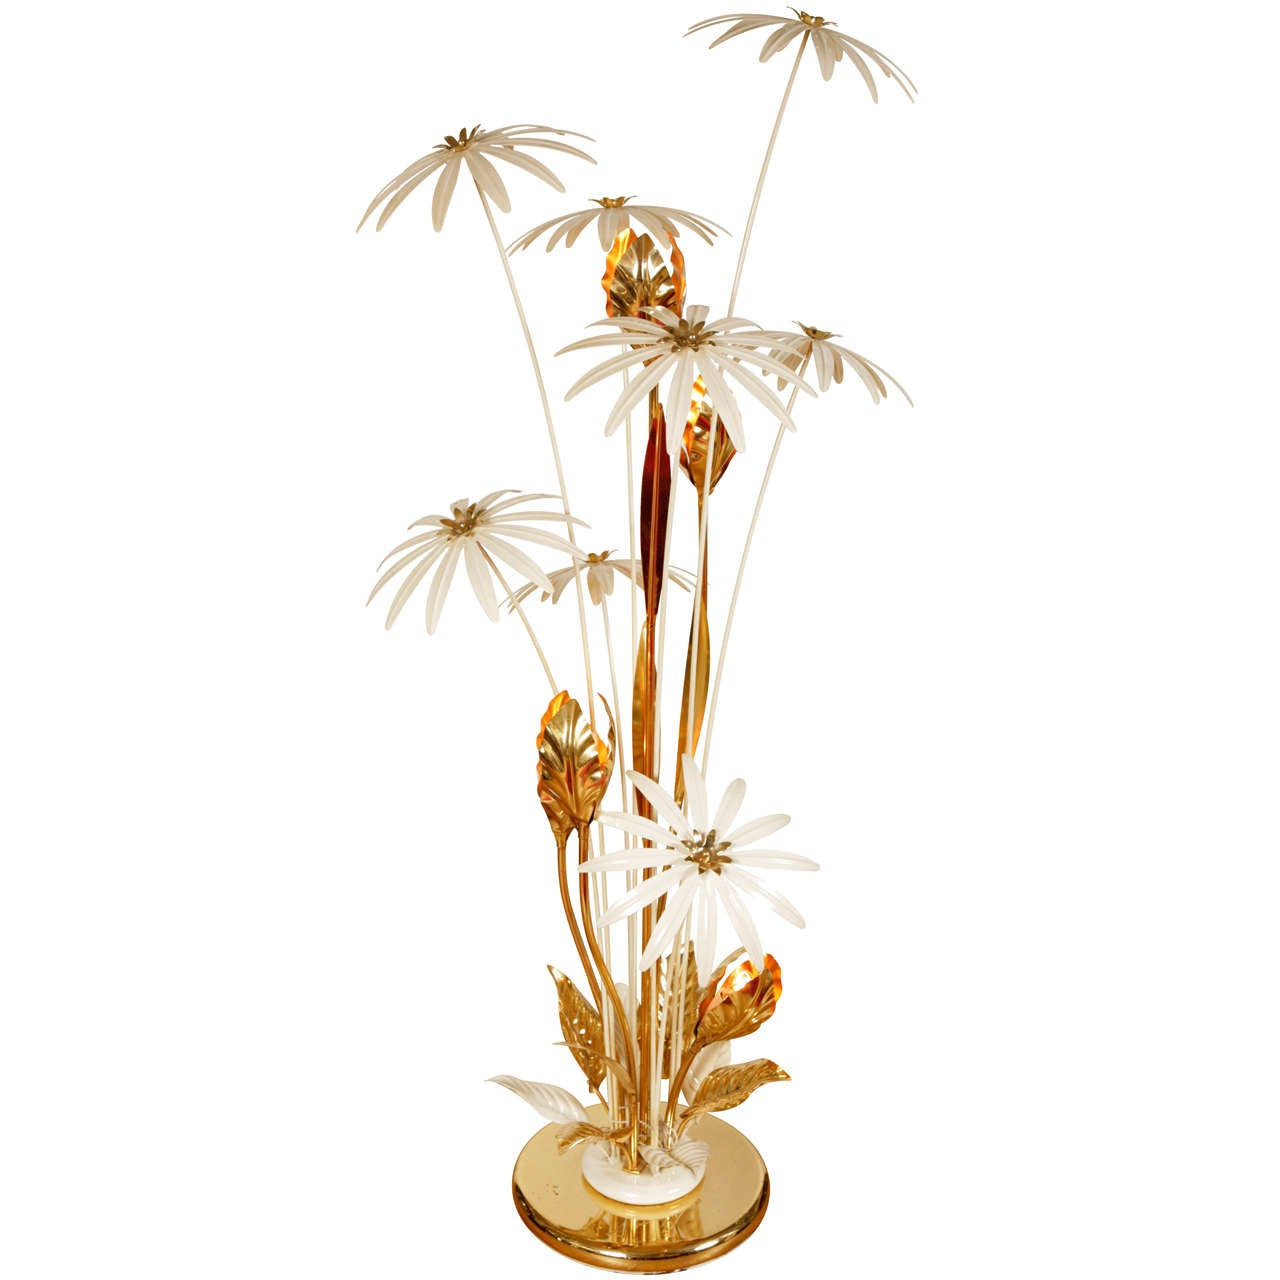 Tropical standard lamp at 1stdibs for Tropical floor lamp with table